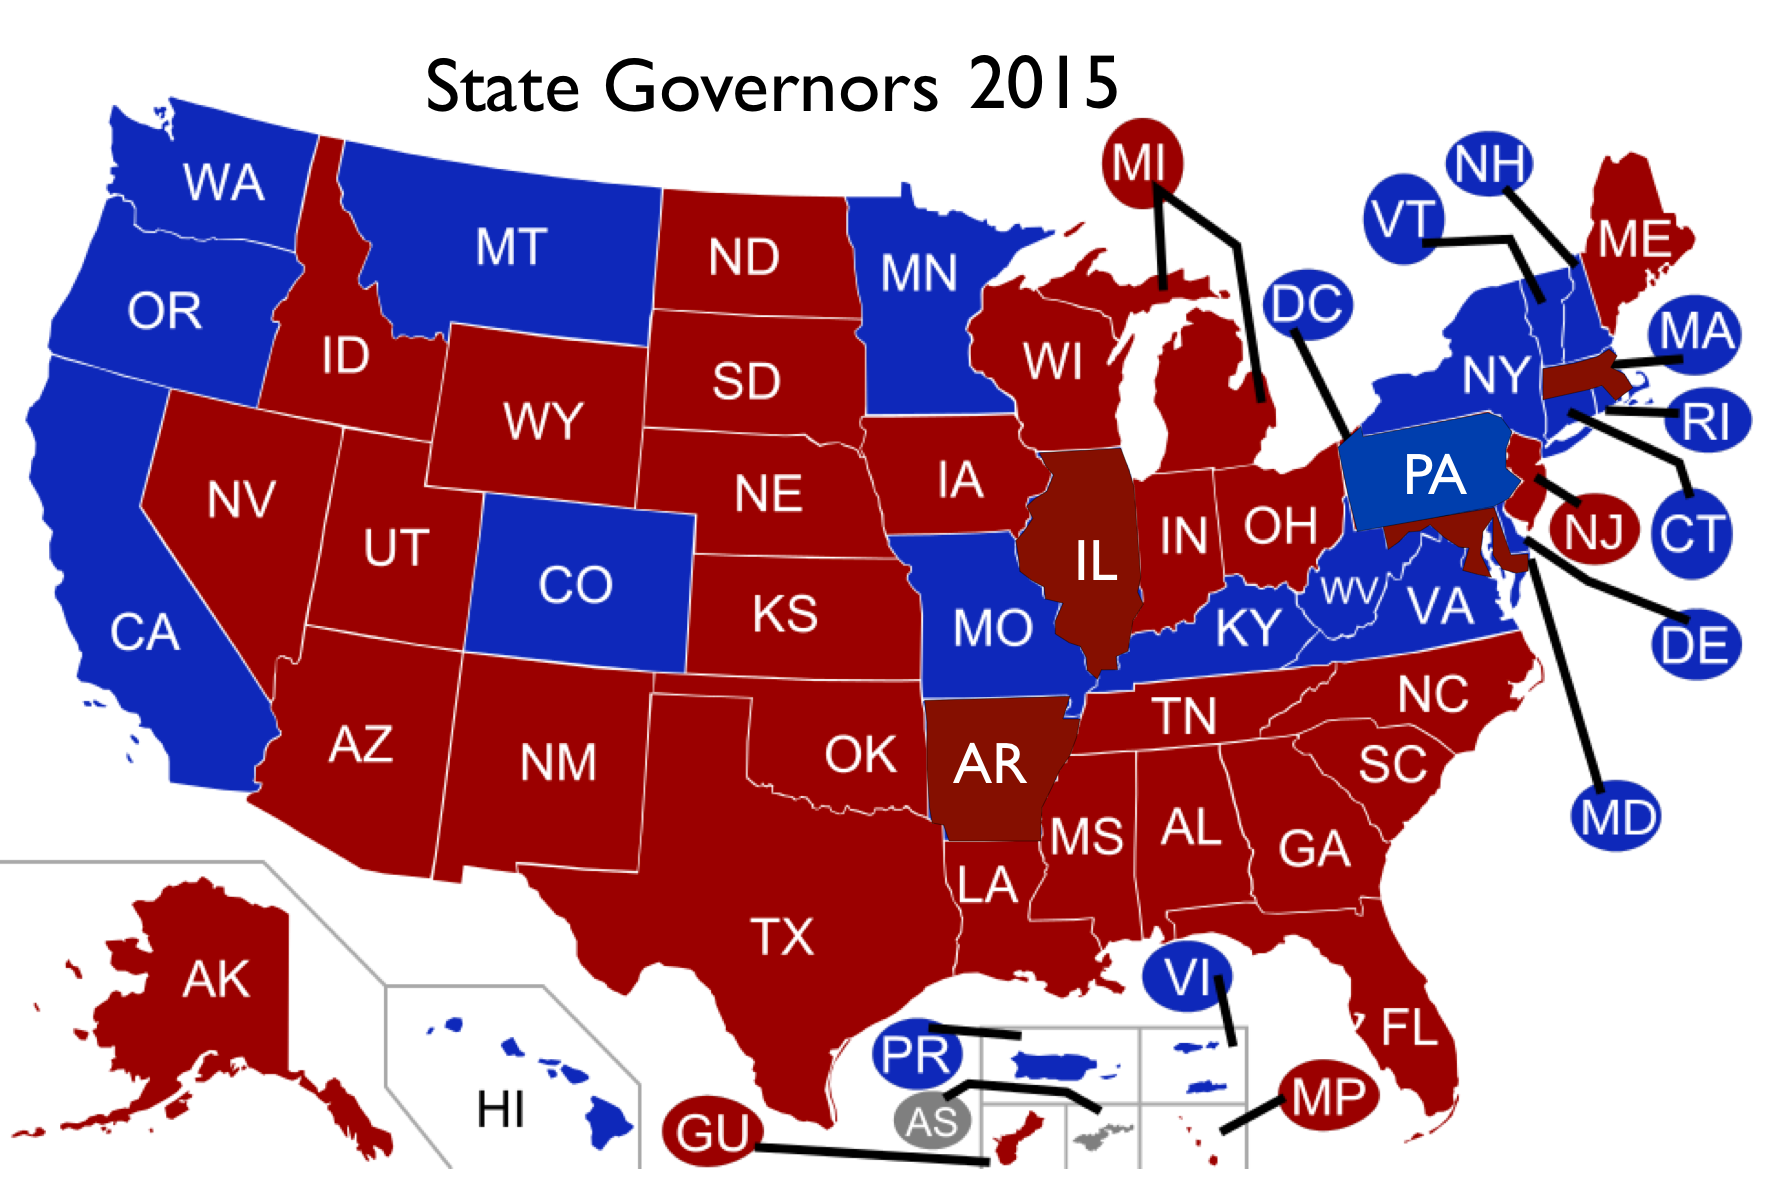 Does The Red Stateblue State Model Of Us Electoral Politics - Us-governors-map